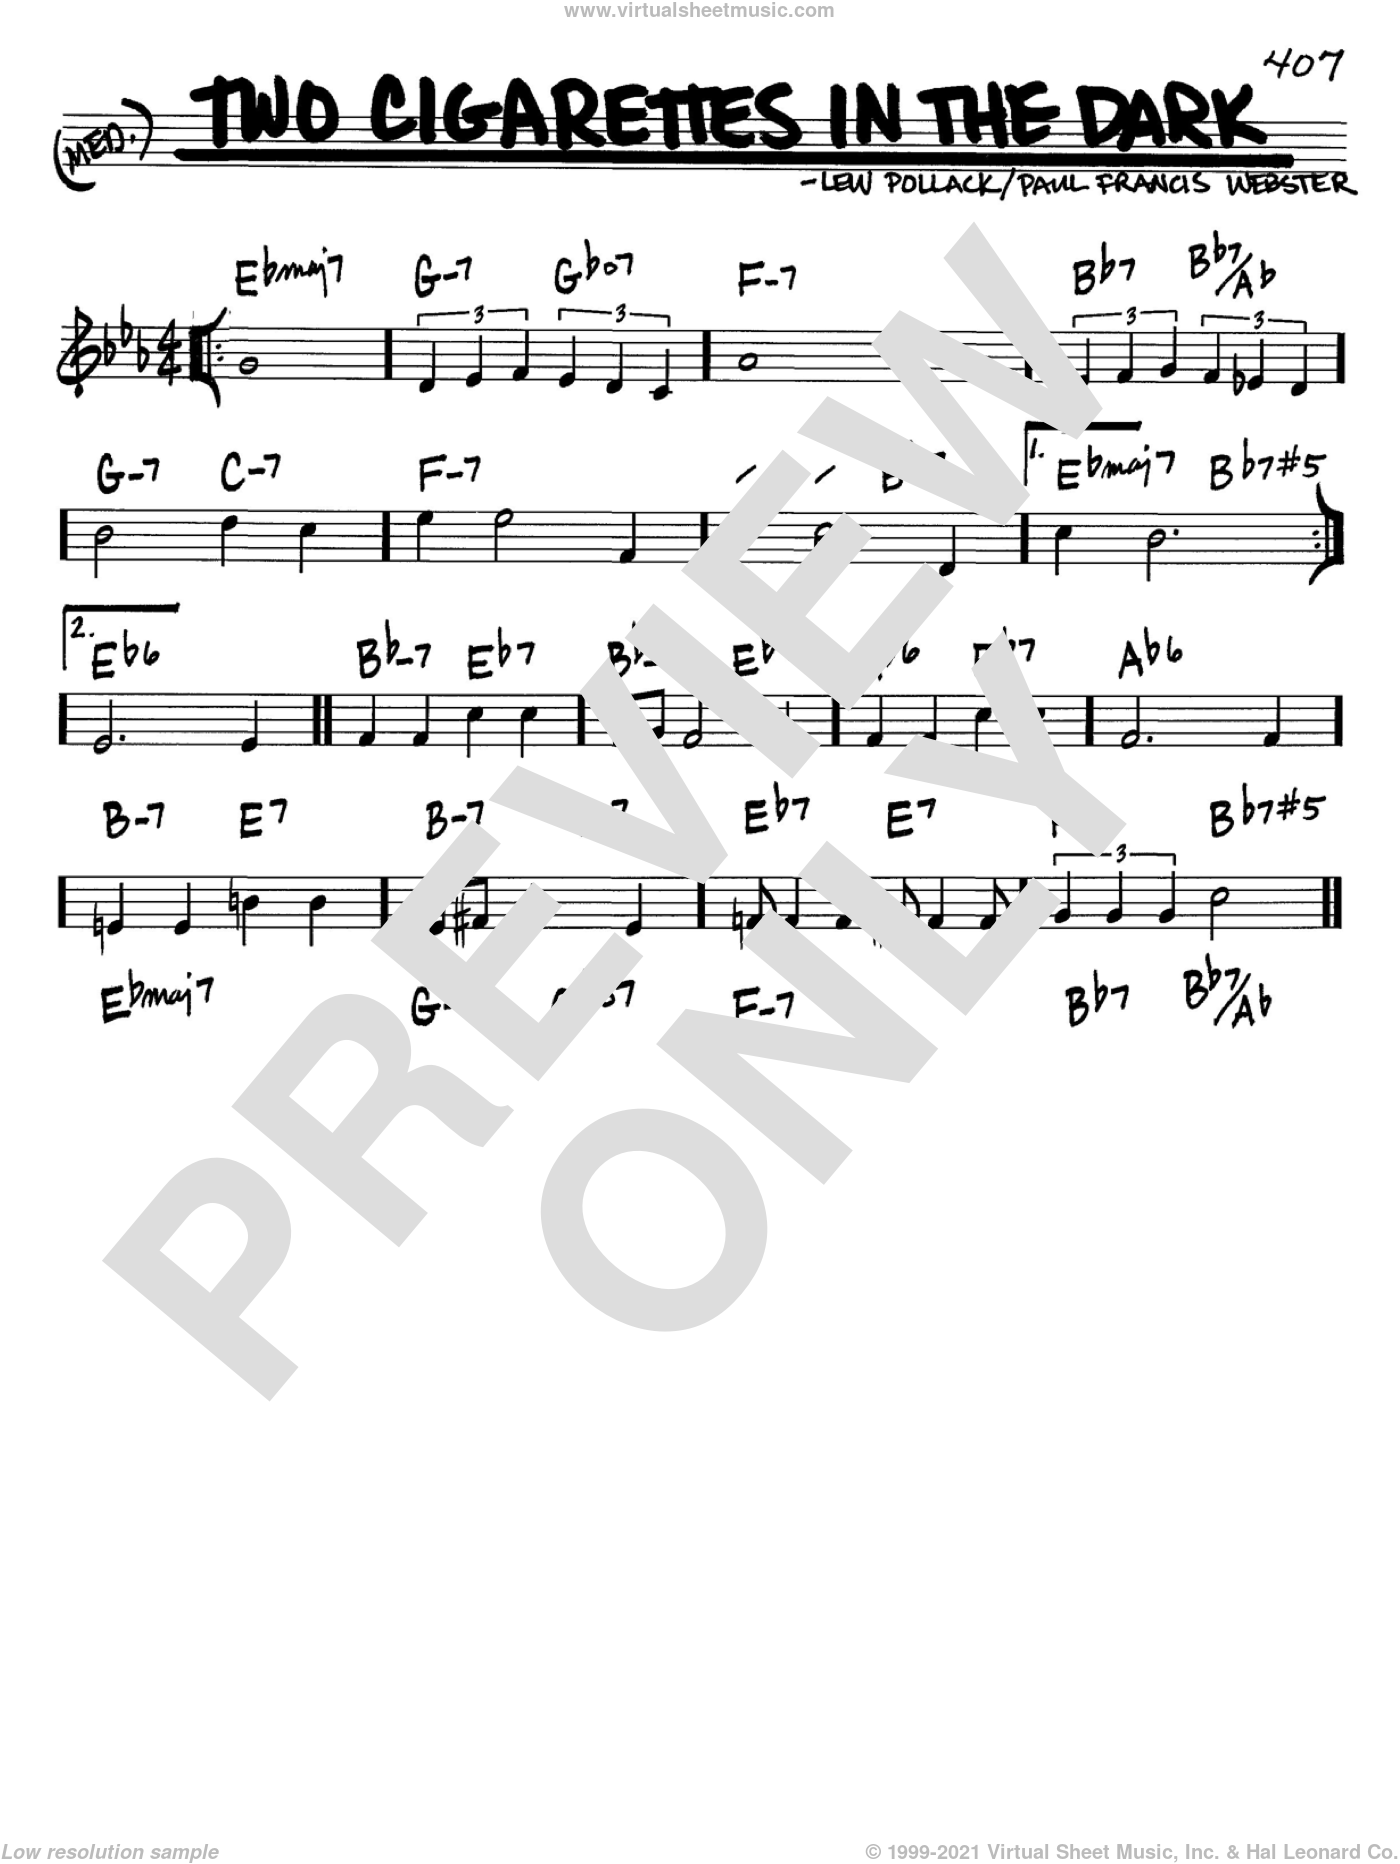 Two Cigarettes In The Dark sheet music for voice and other instruments (C) by Lew Pollack and Paul Francis Webster. Score Image Preview.